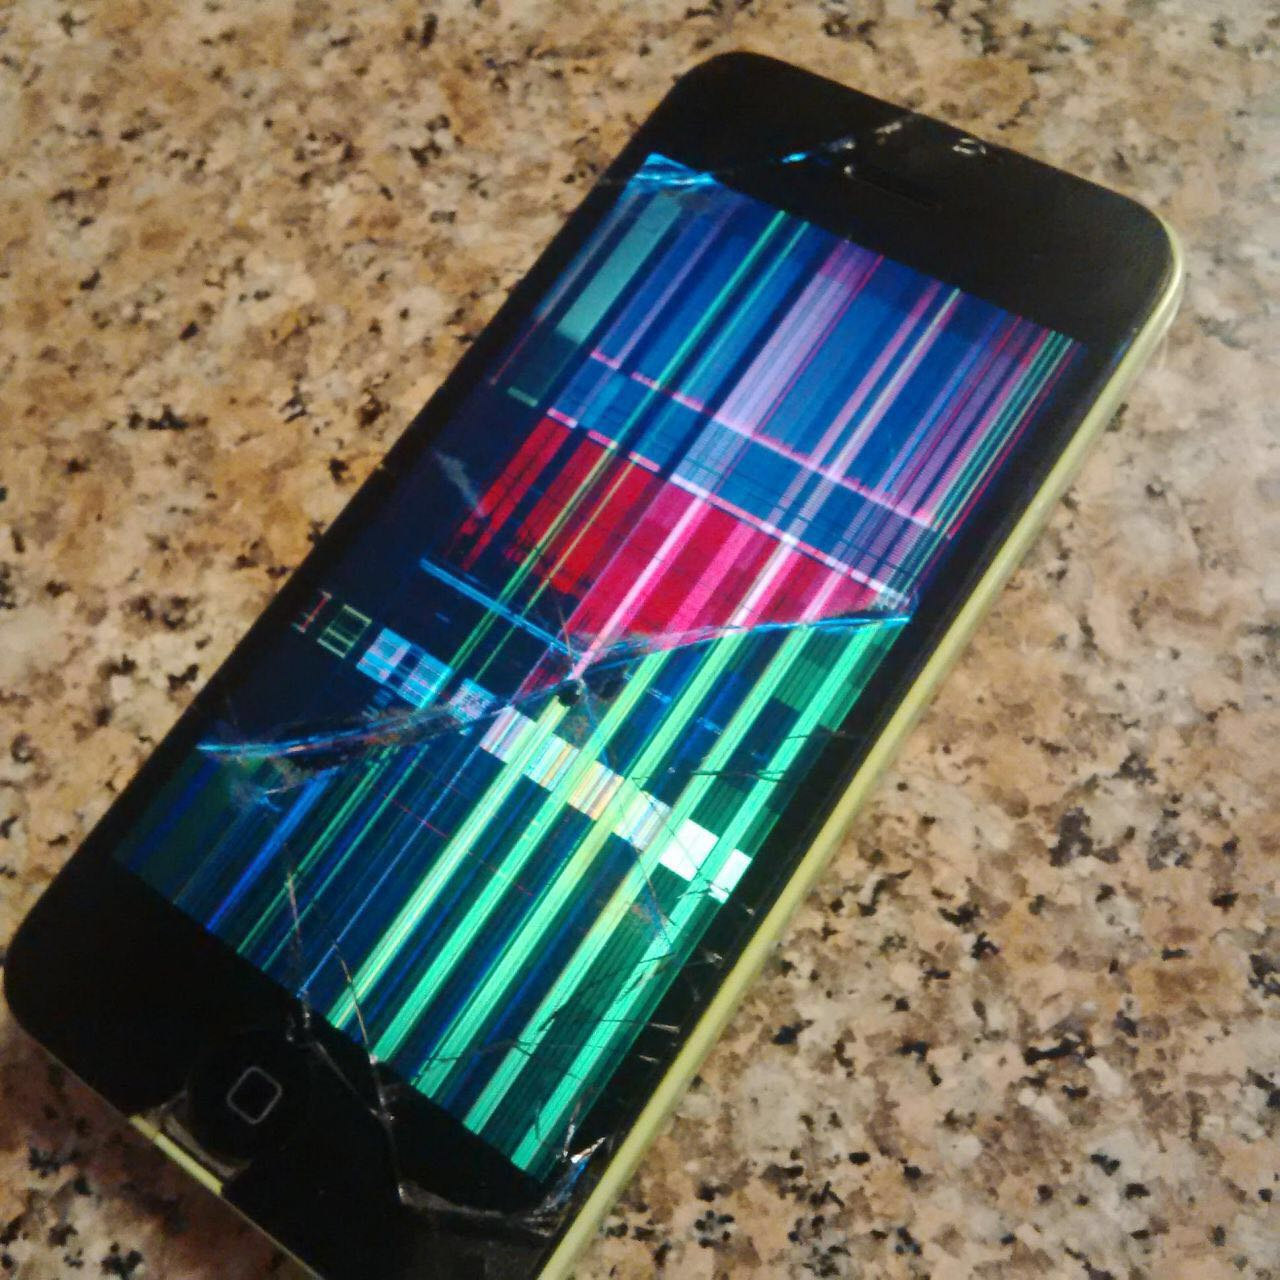 How Do I Fix A Cracked iPhone 5C screen? Call iRepairUAE!